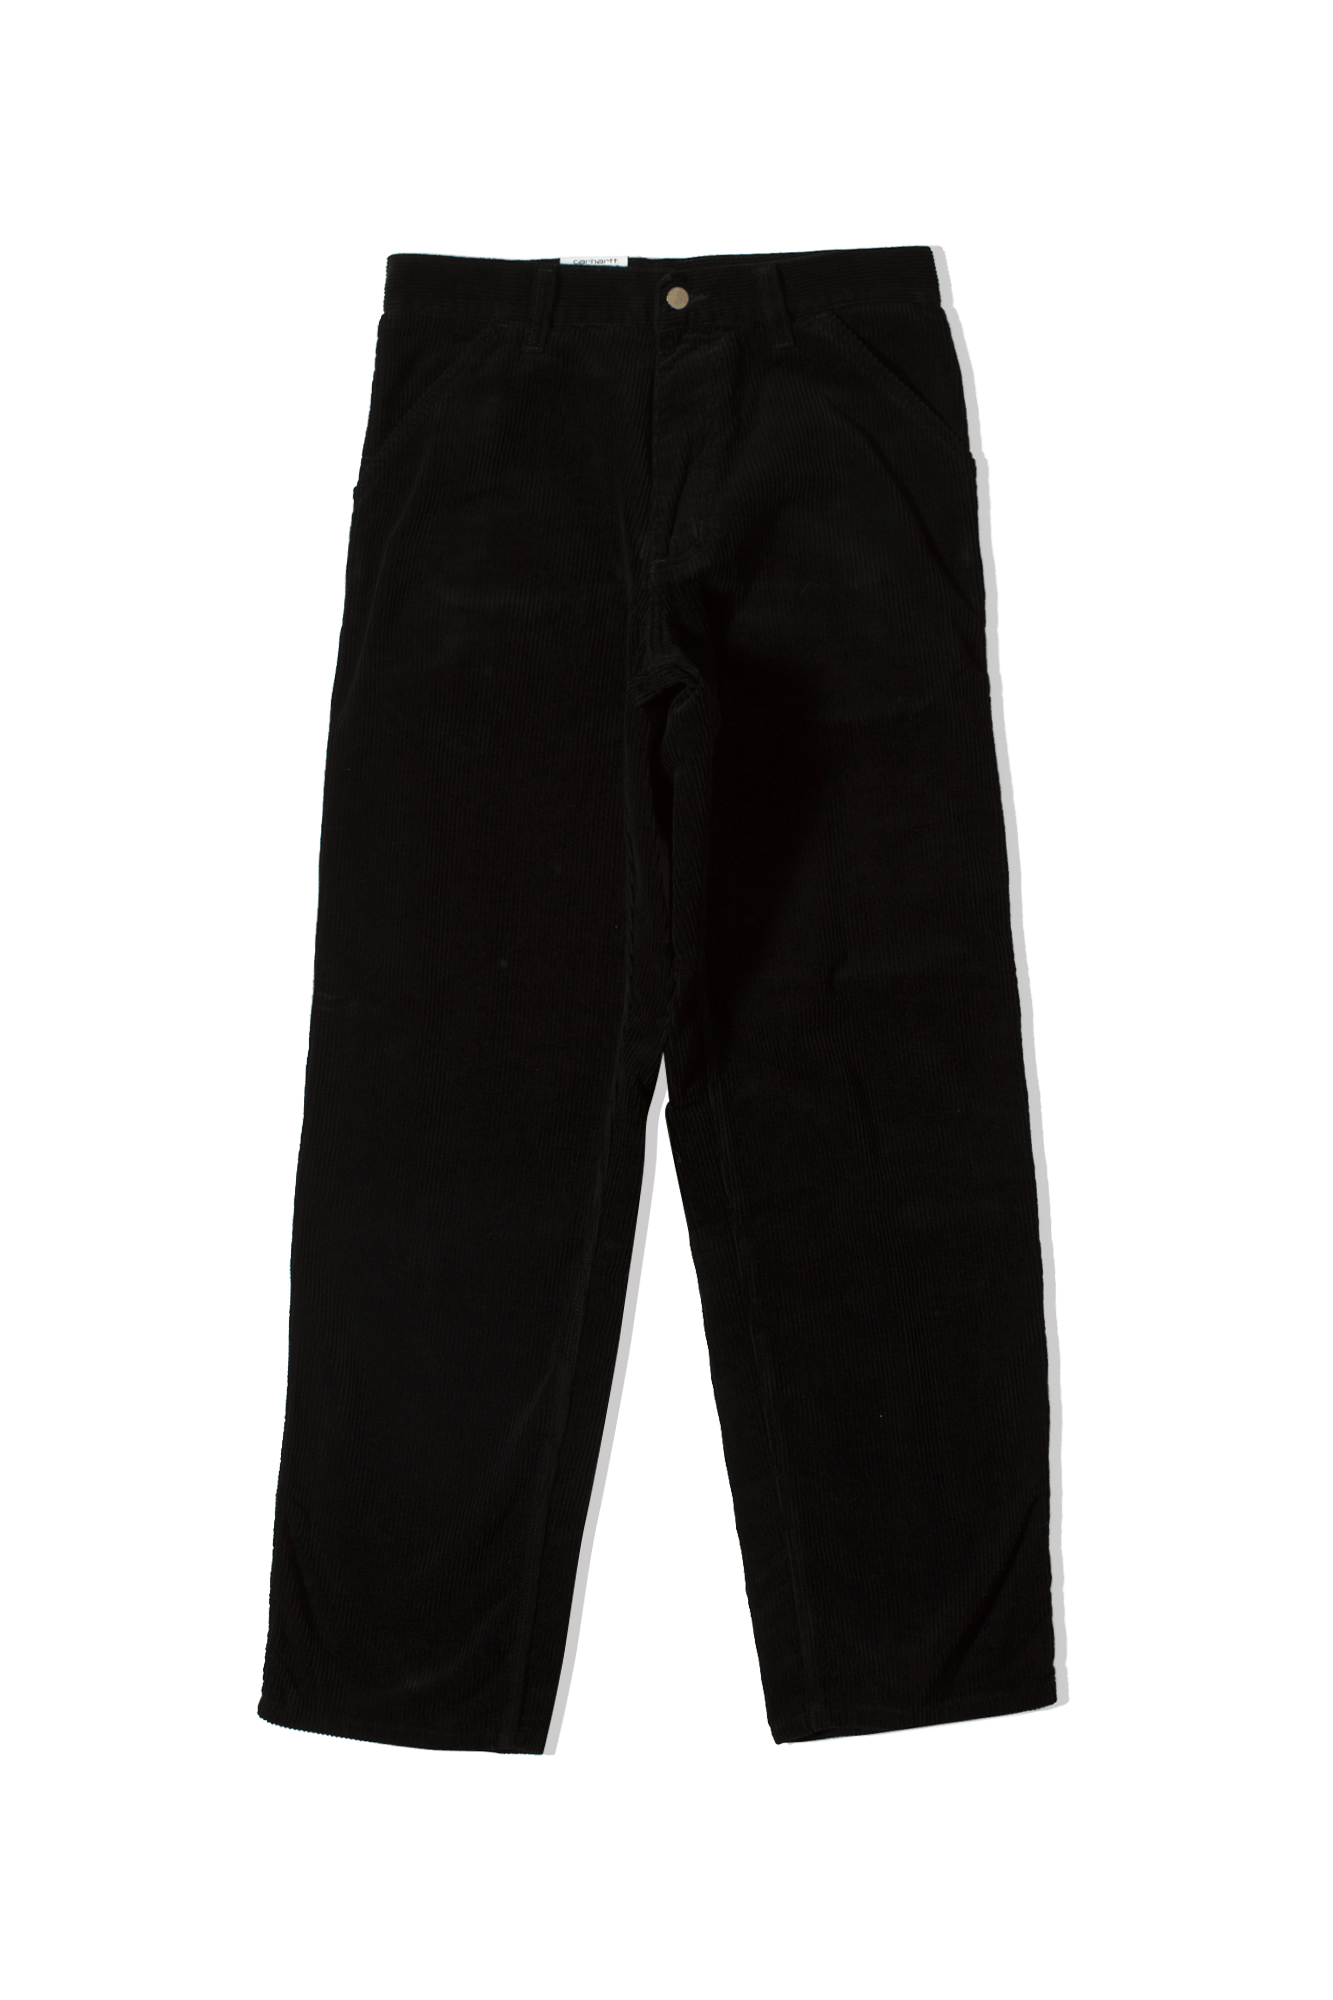 Single Knee Pant x Carhartt Nero